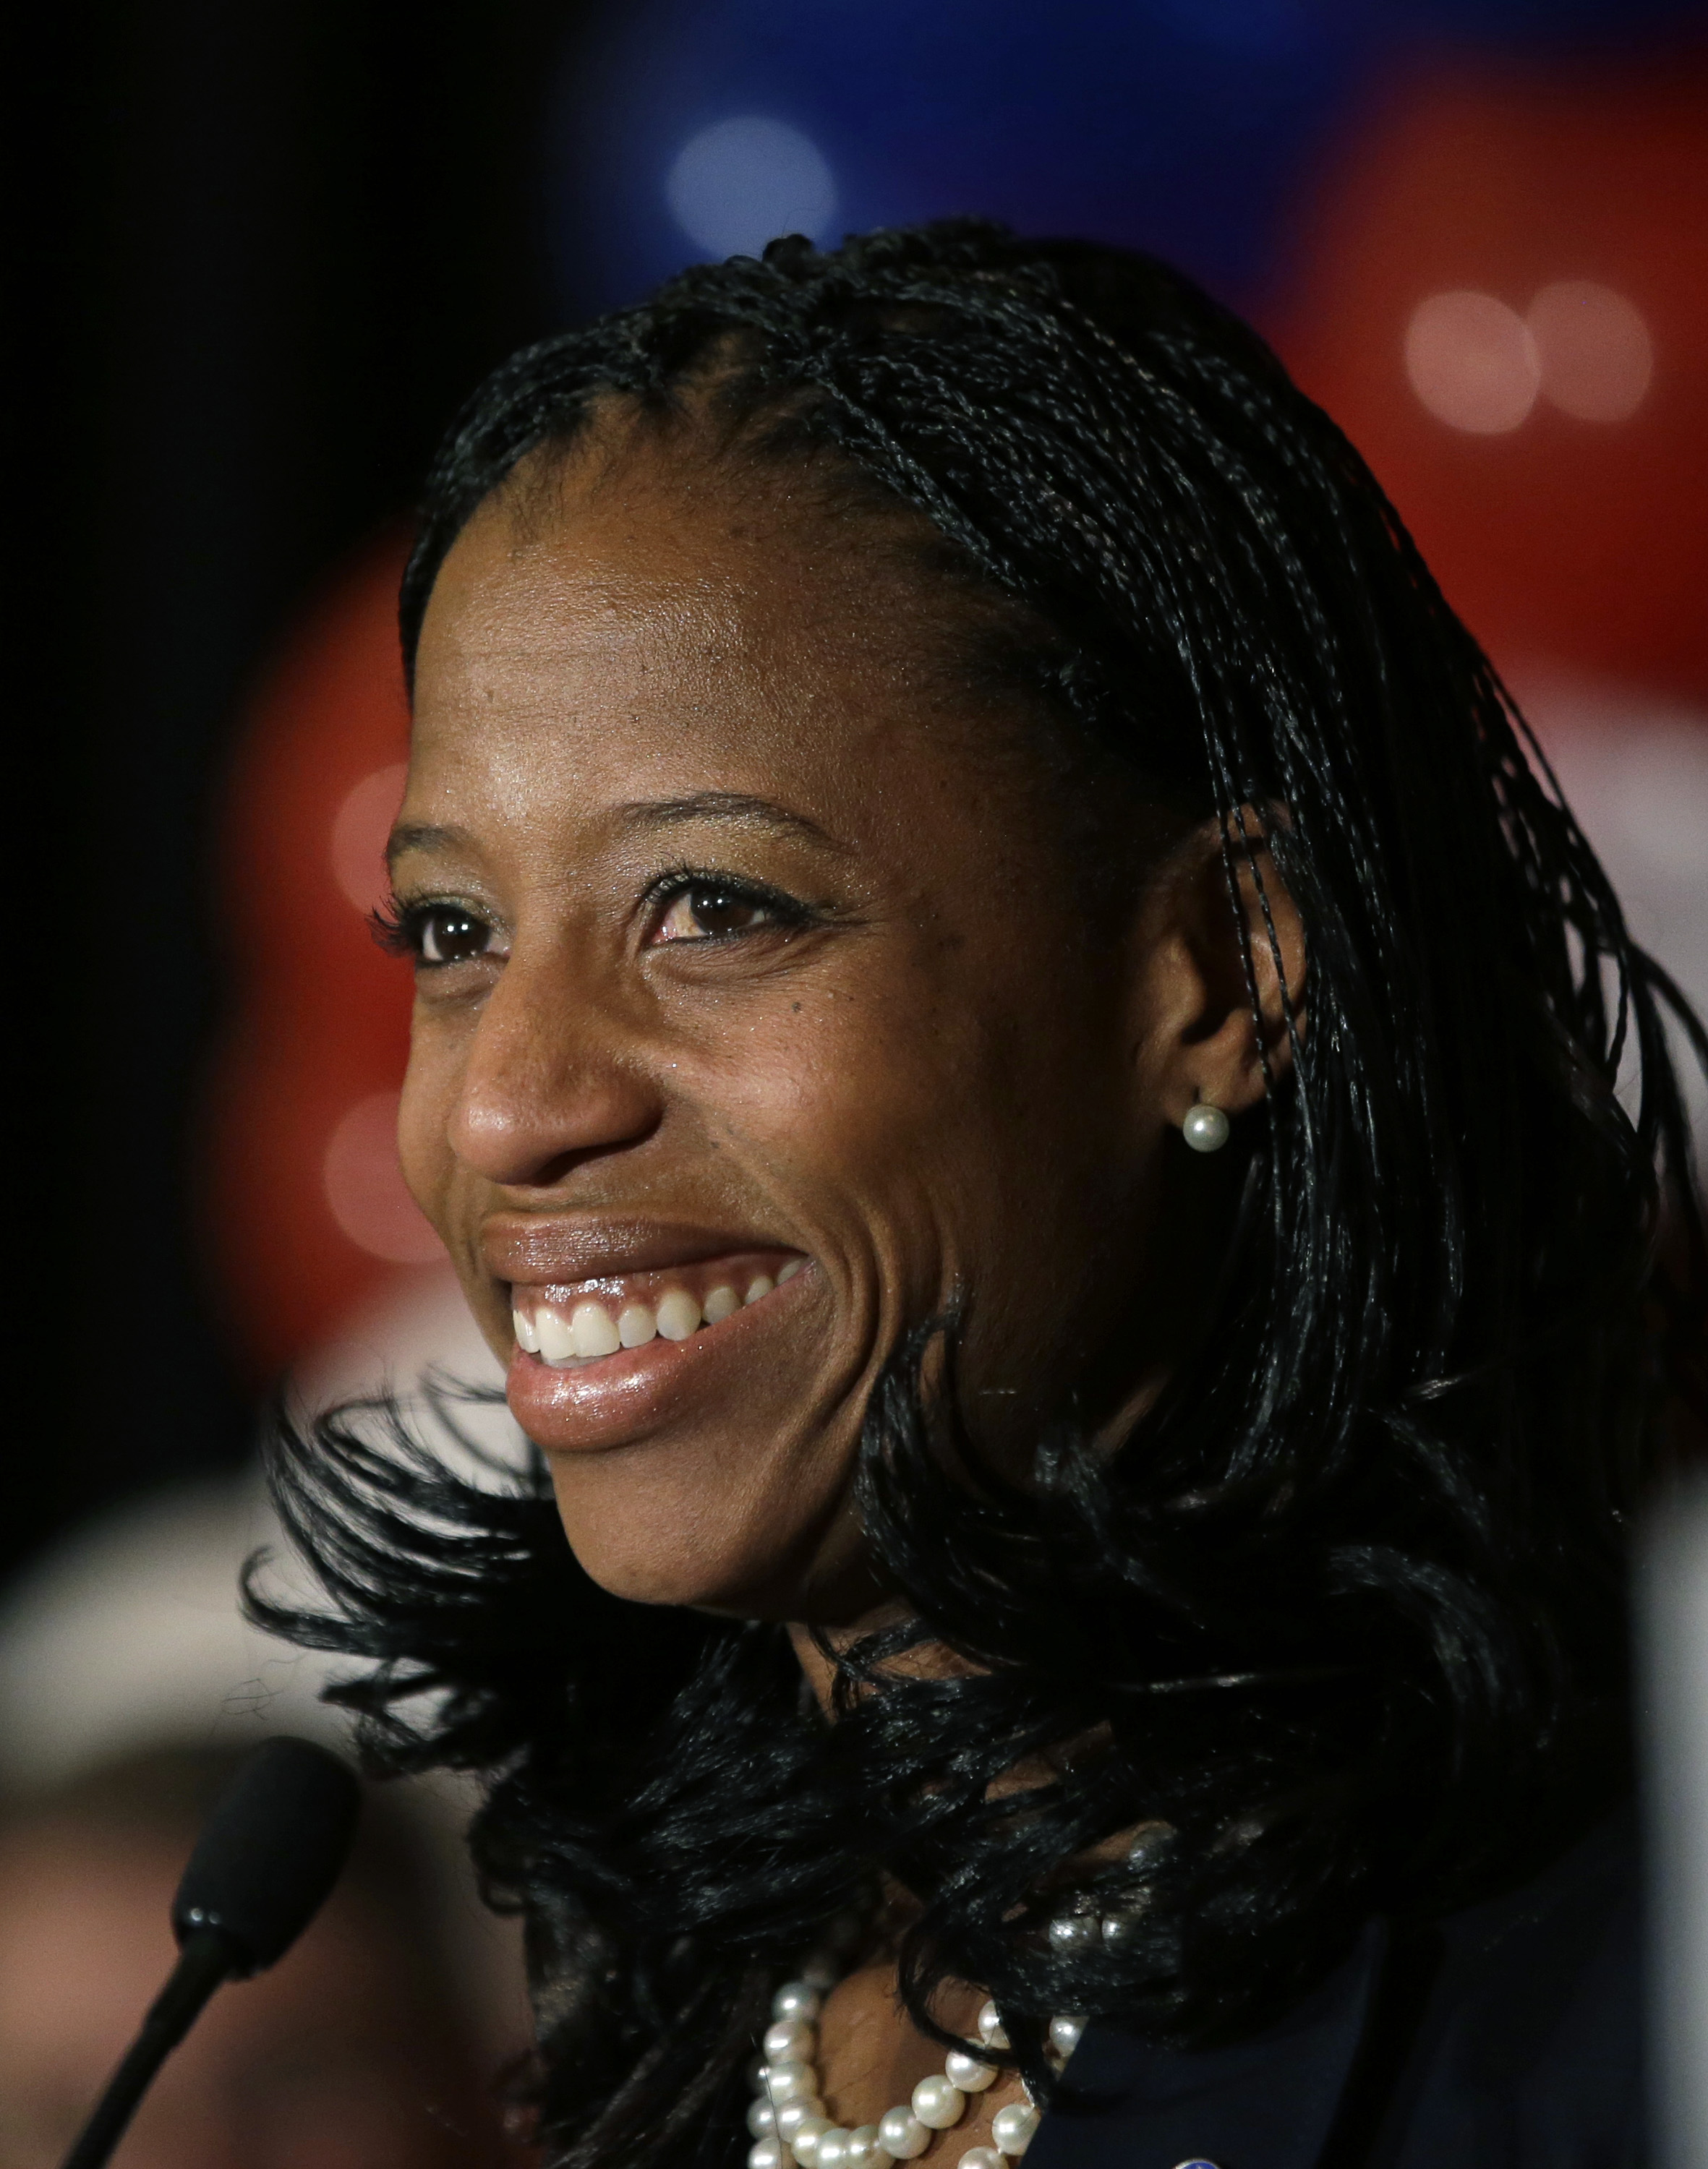 Republican Mia Love celebrates with her supporters after winning the race for Utah's 4th Congressional District during the Utah State GOP election night watch party on Nov. 4, 2014, in Salt Lake City.